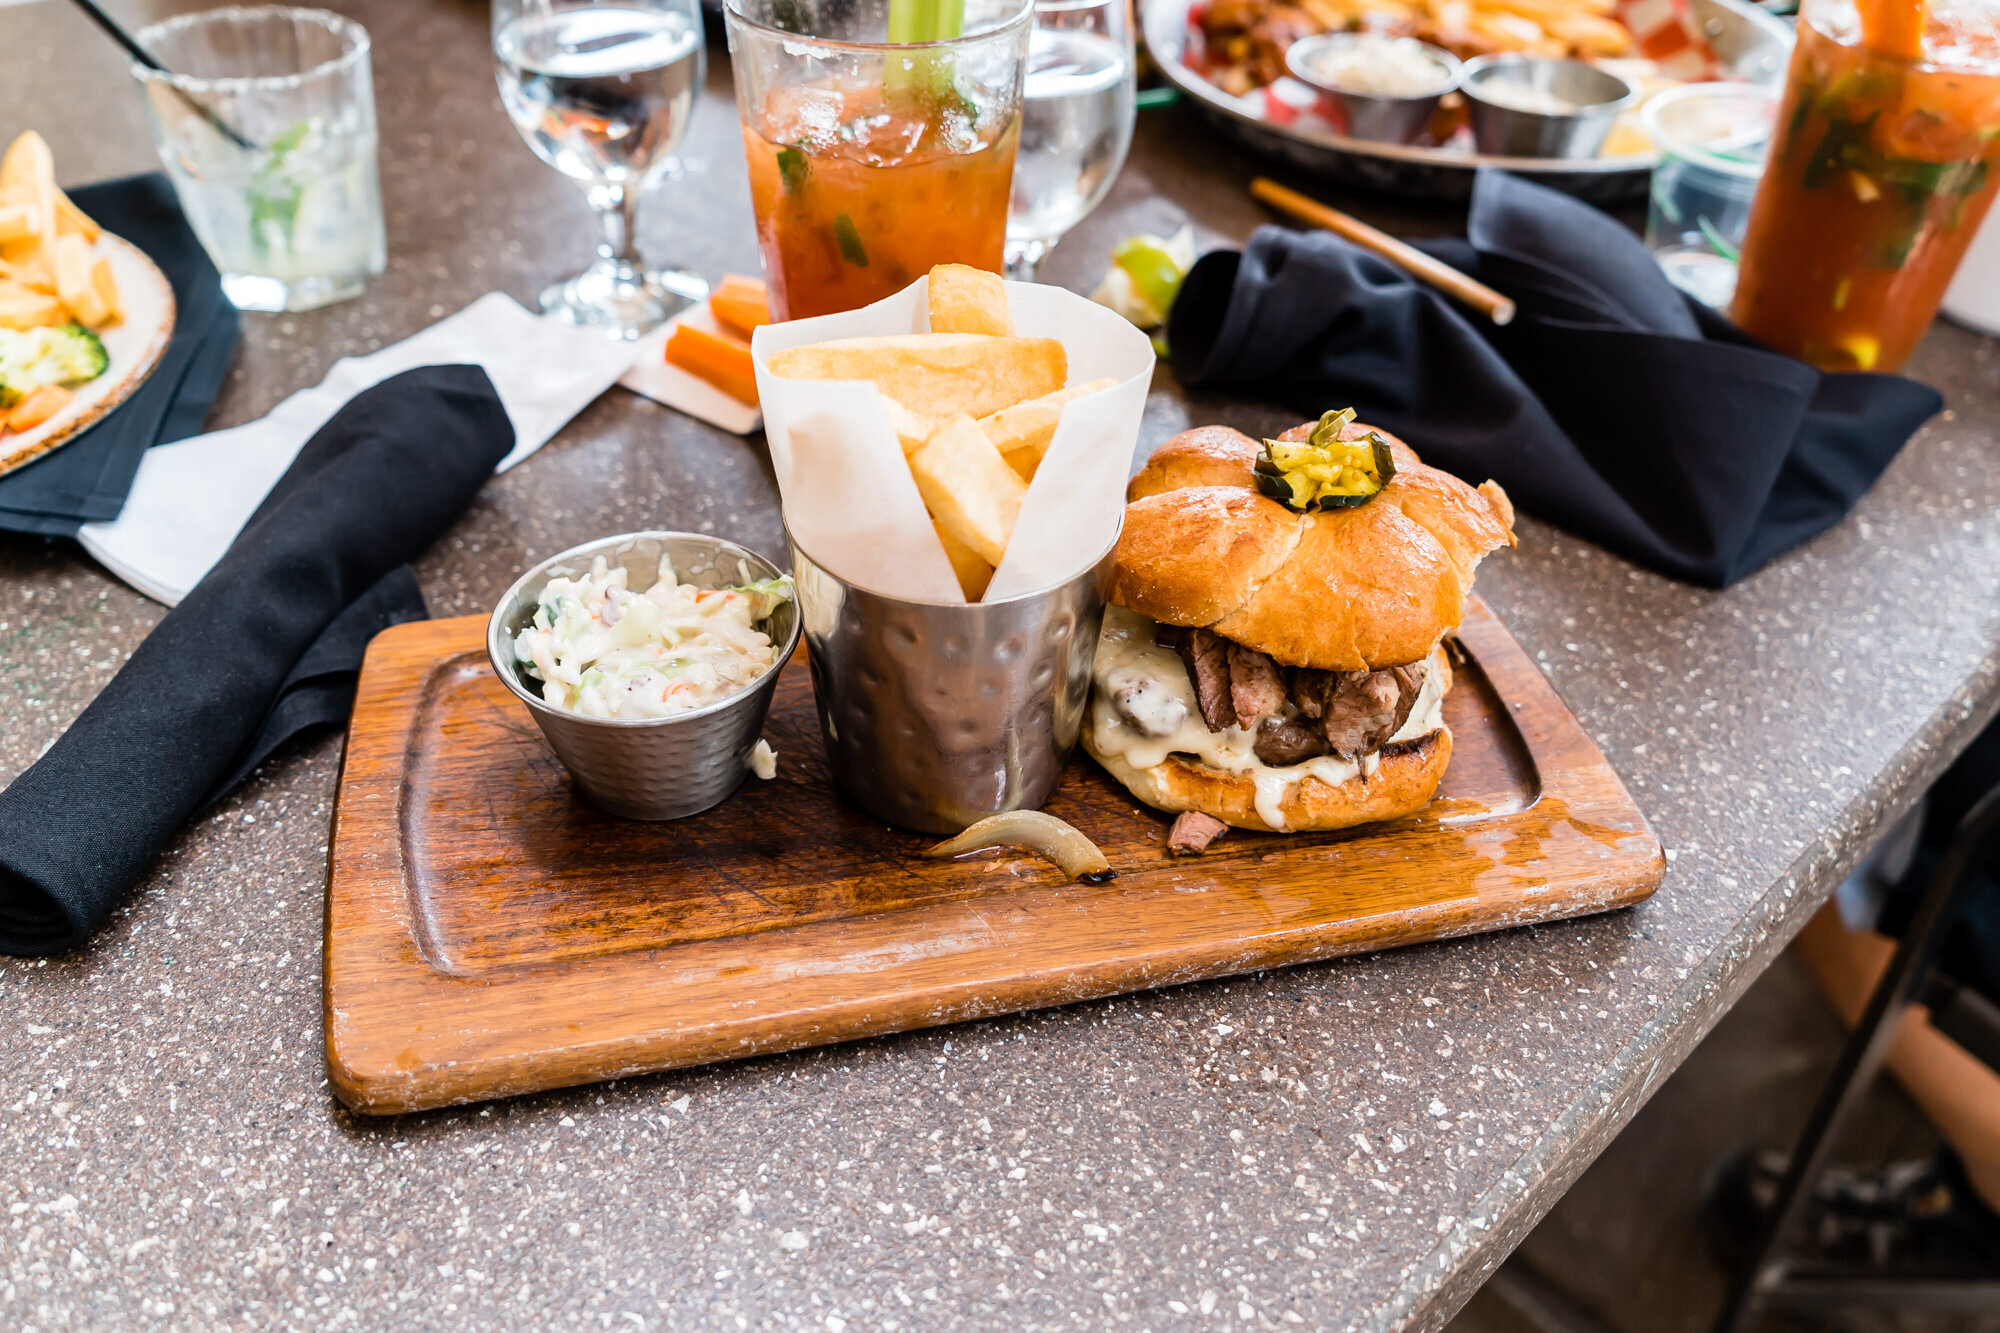 The Steakhouse - Grileld Burger with Swiss Cheese, Short Rib, Gilled Onions, Garlic Aioli